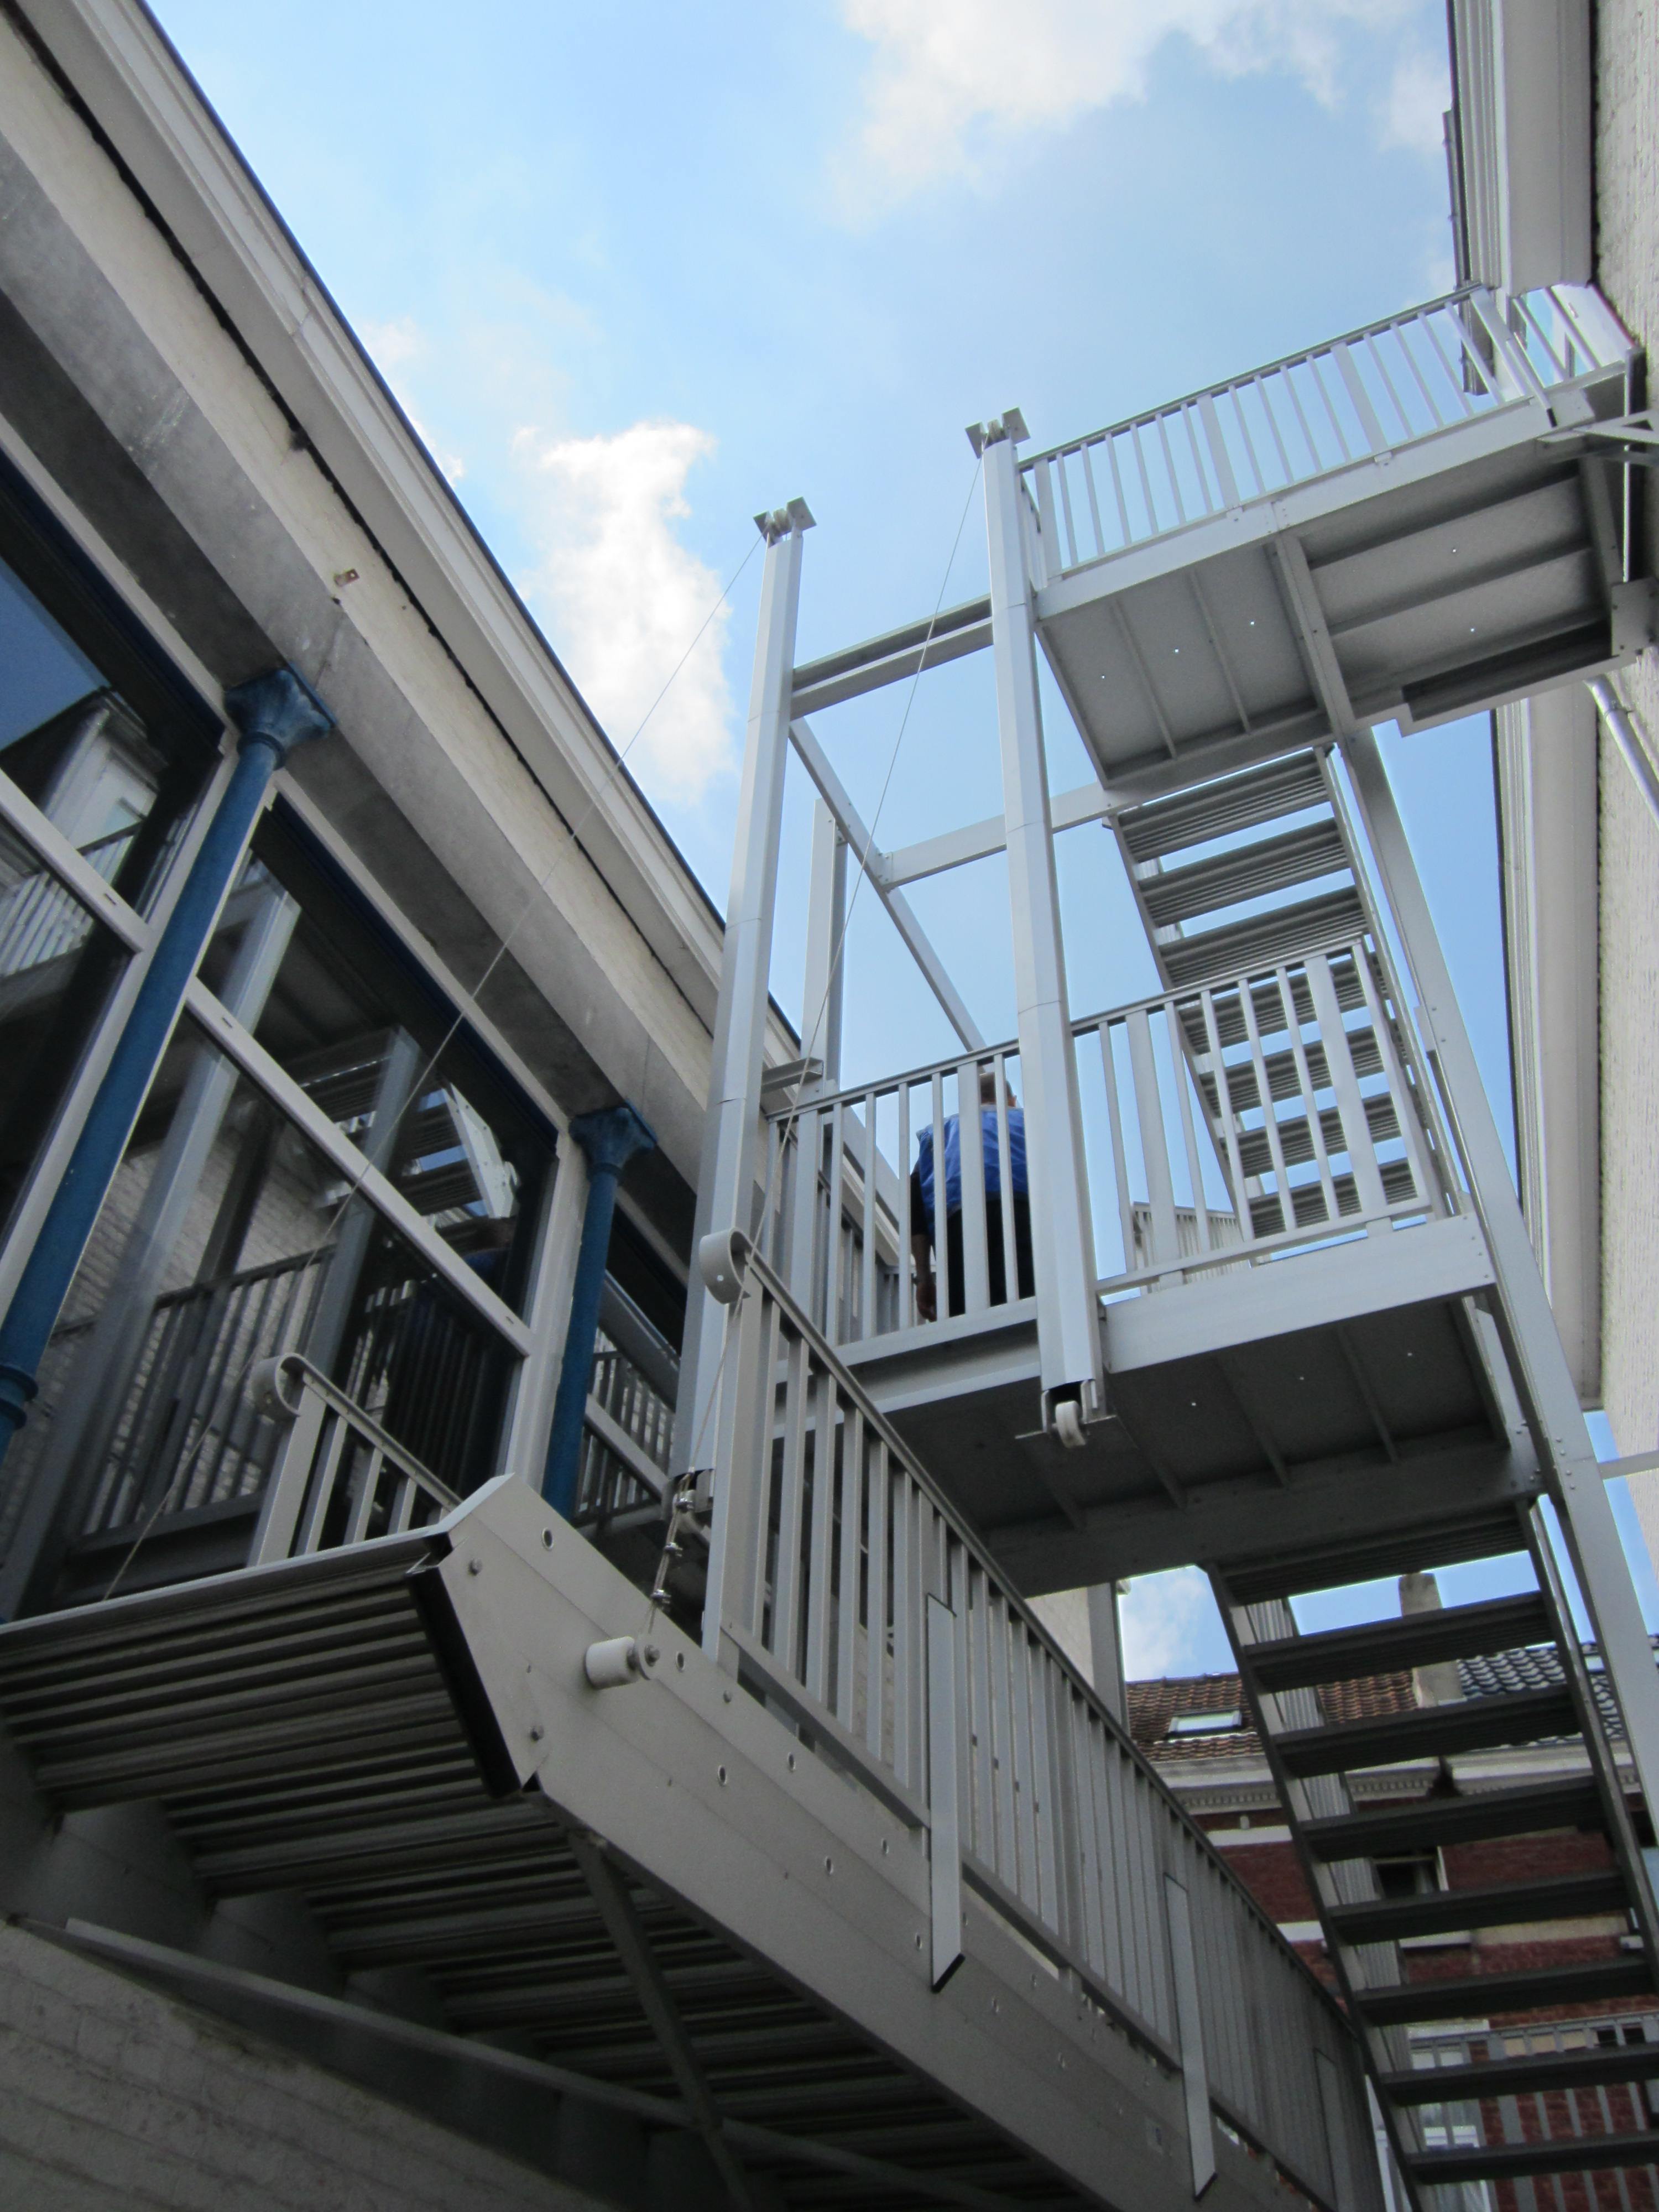 Anodized aluminum counterbalanced JOMY stairs